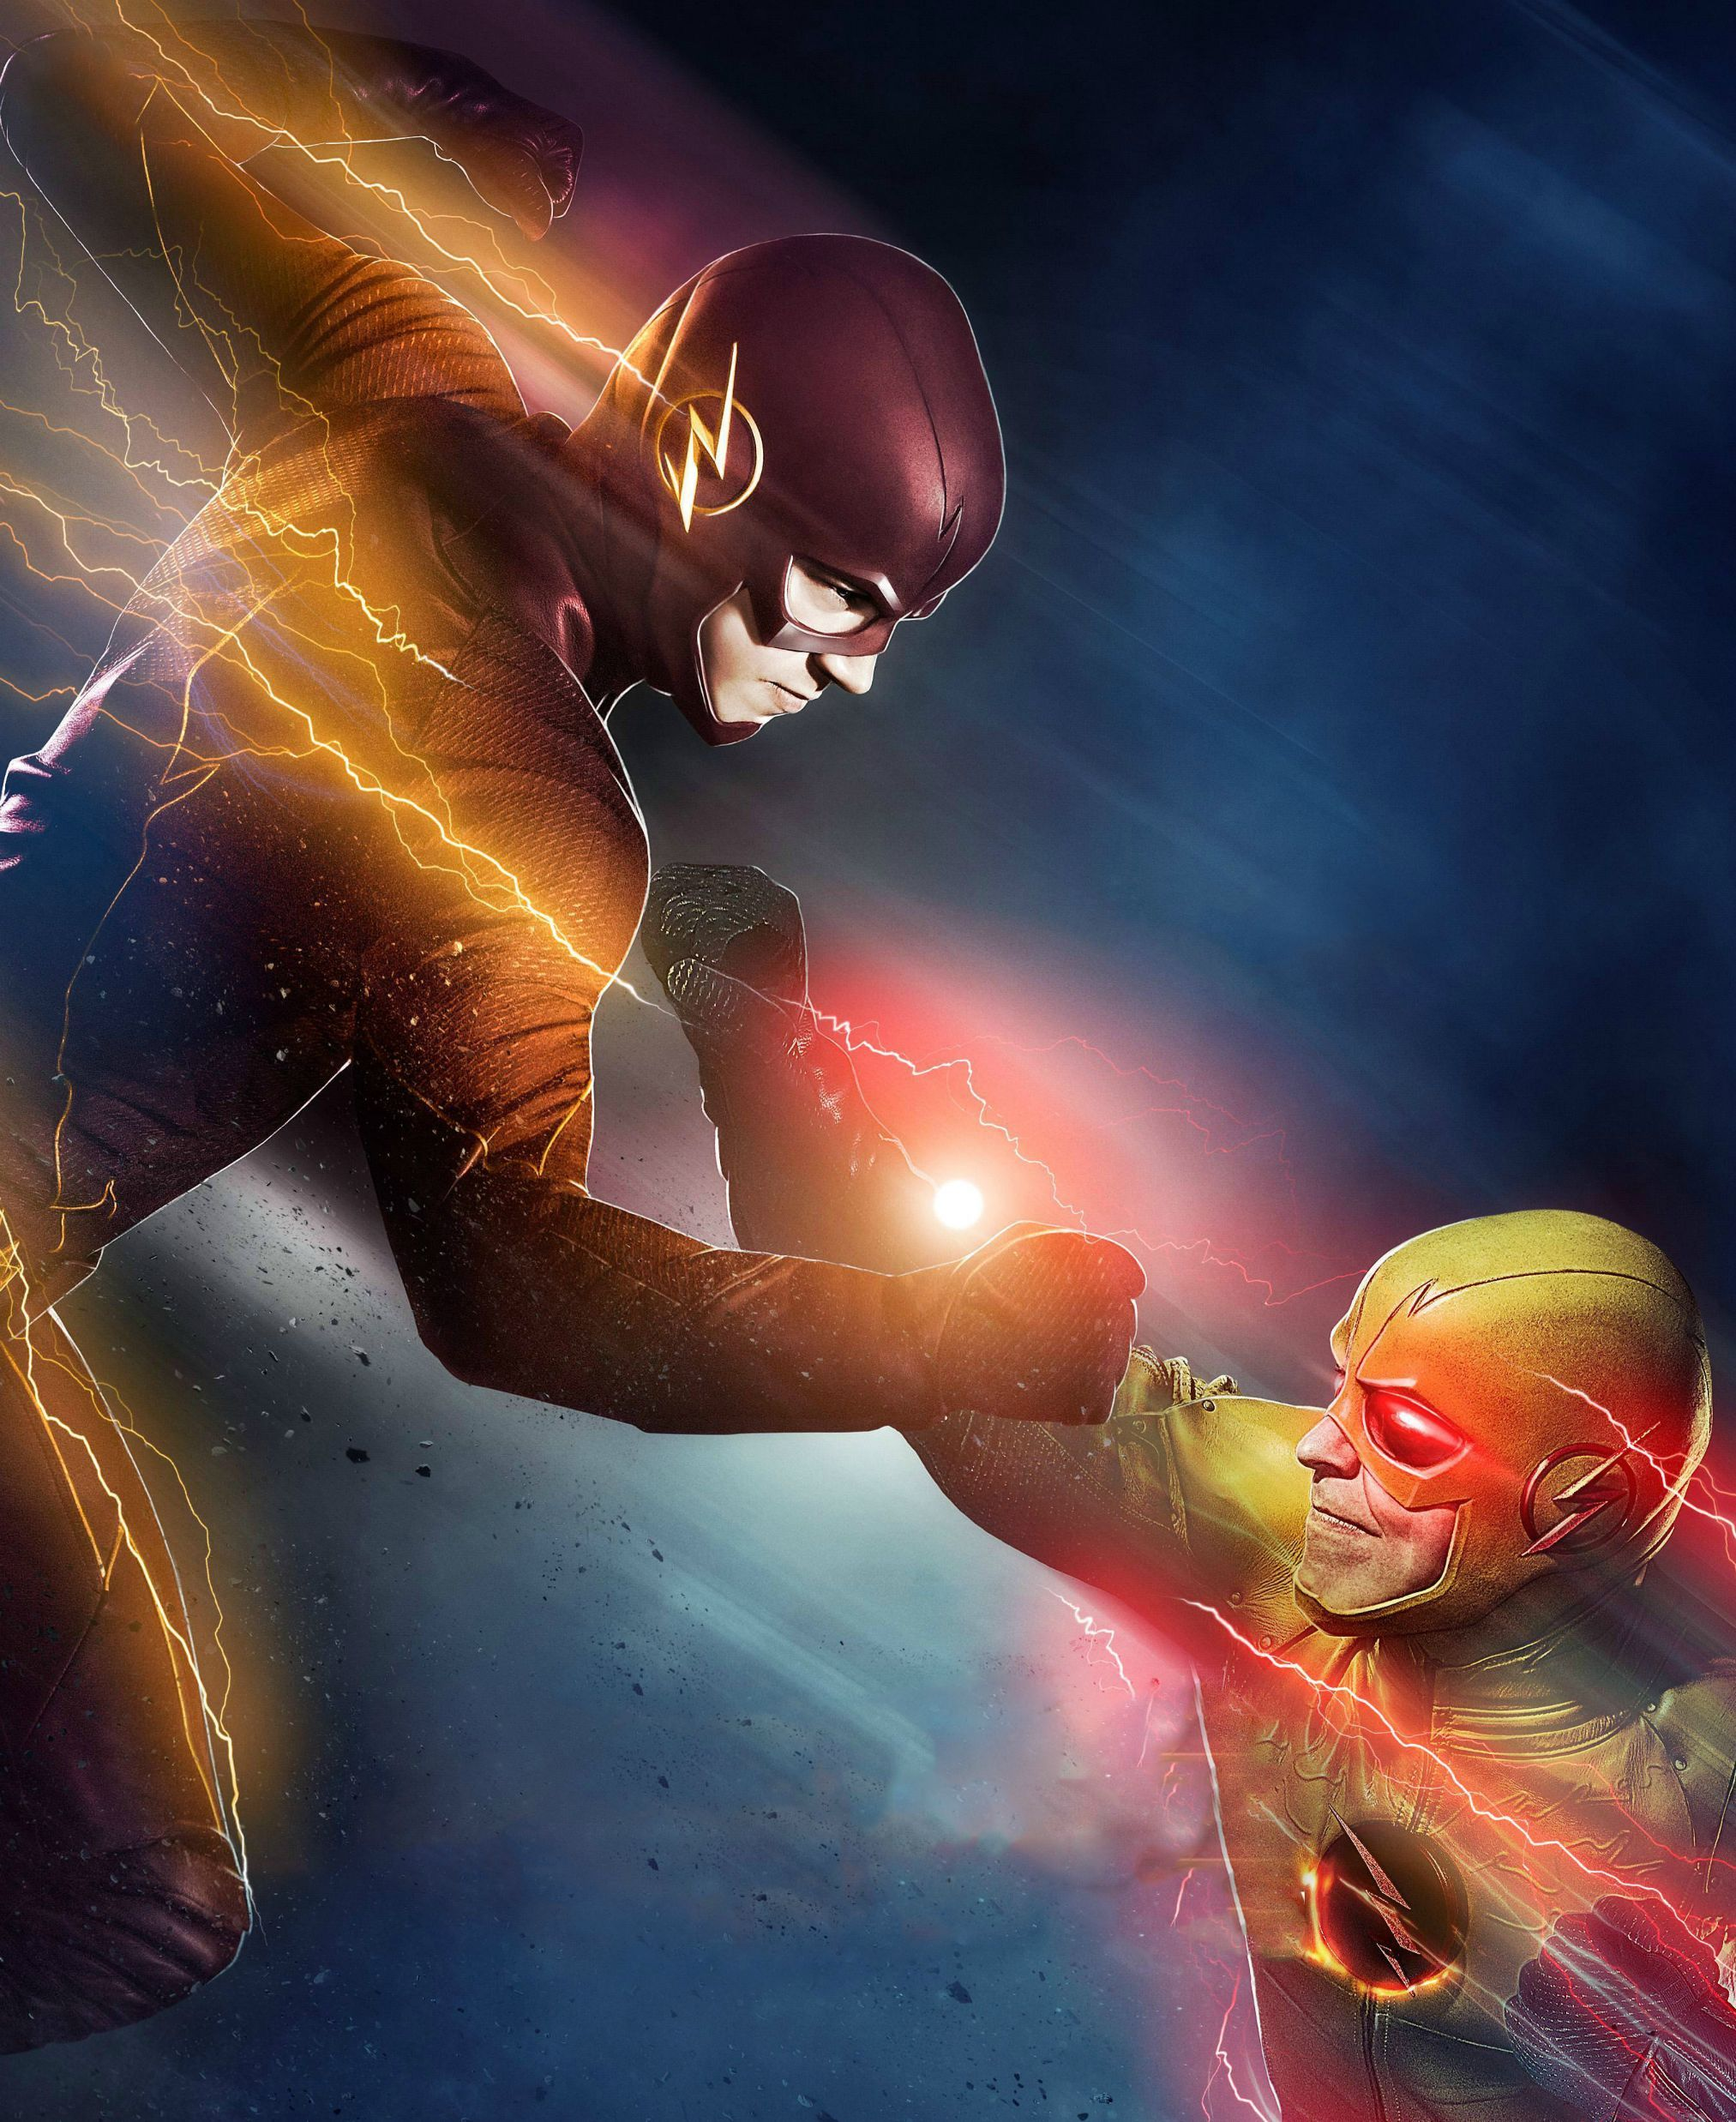 Free Download Reverse Flash Iphone Wallpapers Top Reverse Flash